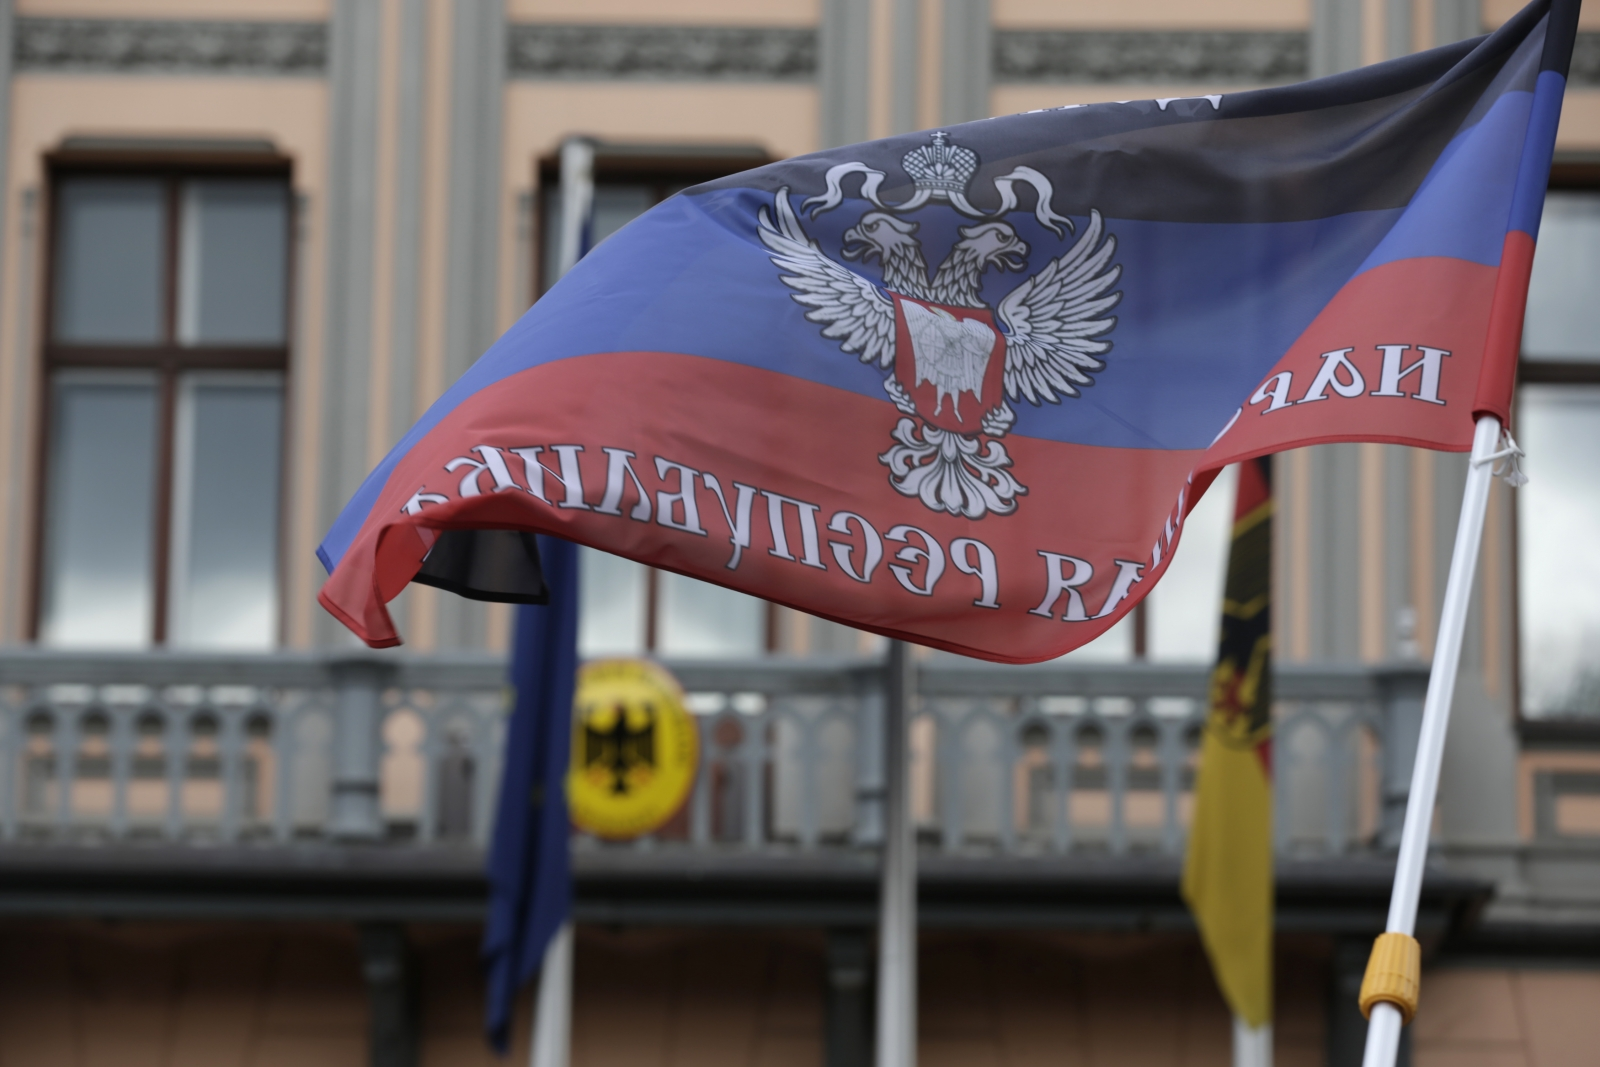 A protester waves a self-declared Donetsk People's Republic flag in front of Germany's embassy in Riga, May 8, 2014. About 40 people from the Latvian Russian Union staged a protest denouncing Ukraine's government military actions against pro-Russian se